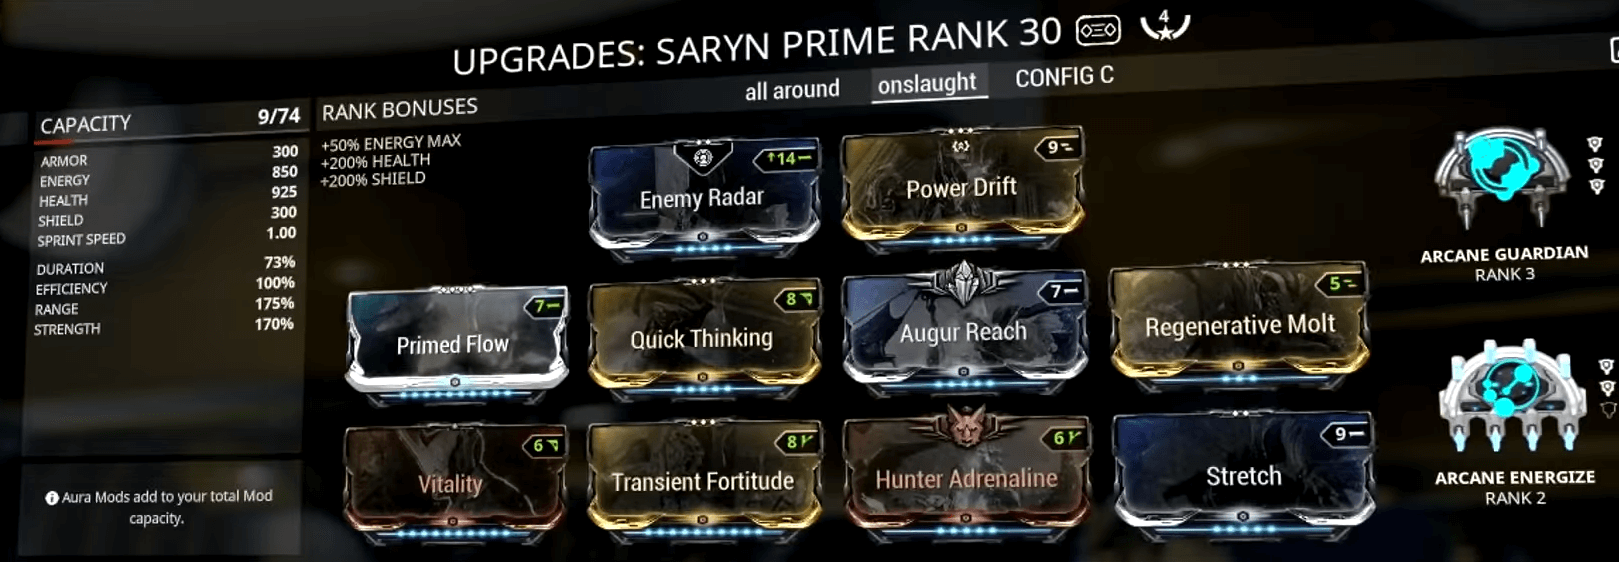 Warframe power strength mods list | Inaros the Immortal Tank